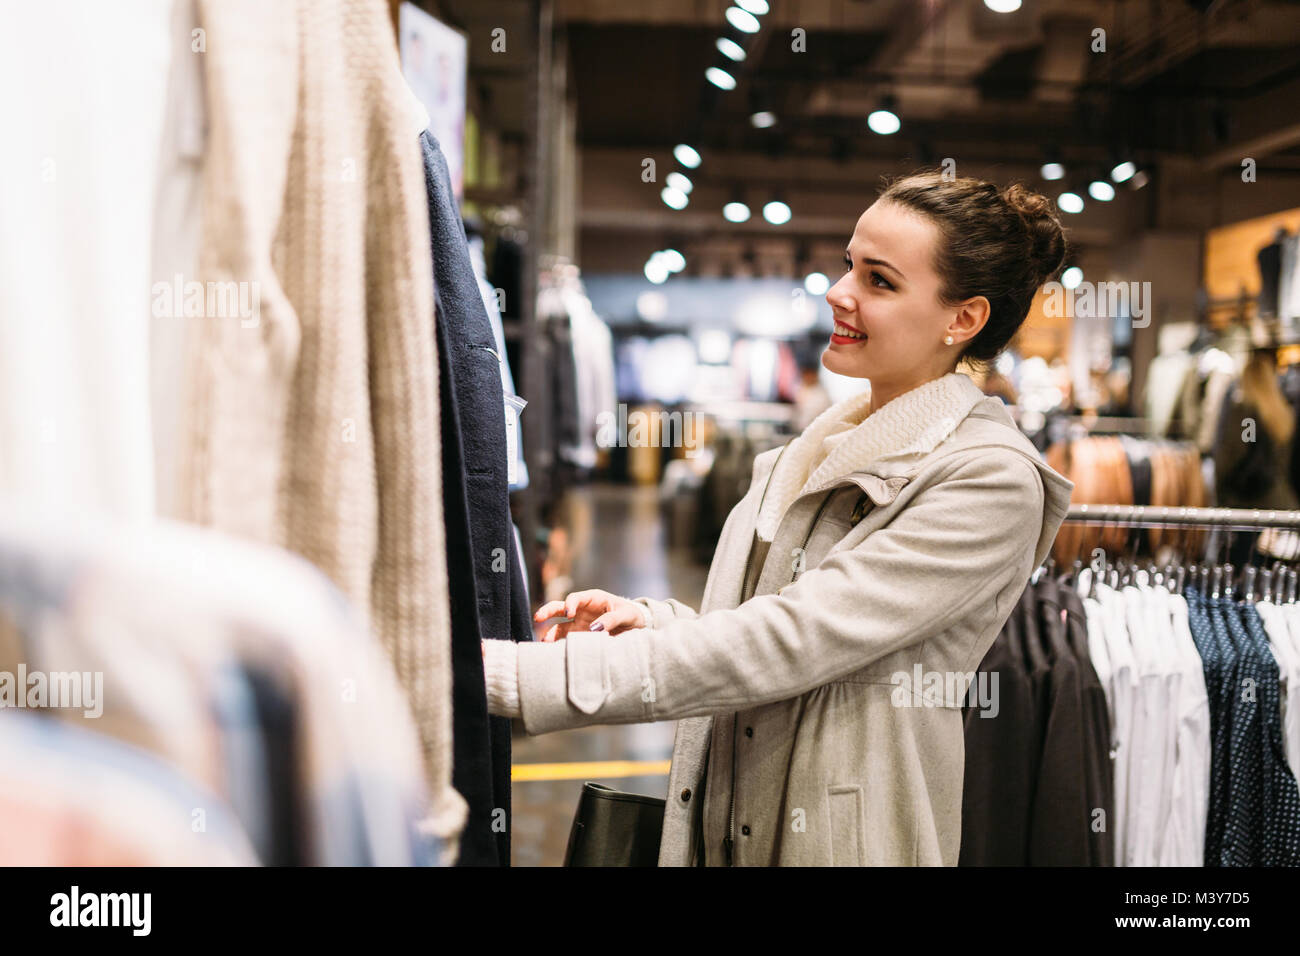 Young attractive woman buying clothes in mall Photo Stock